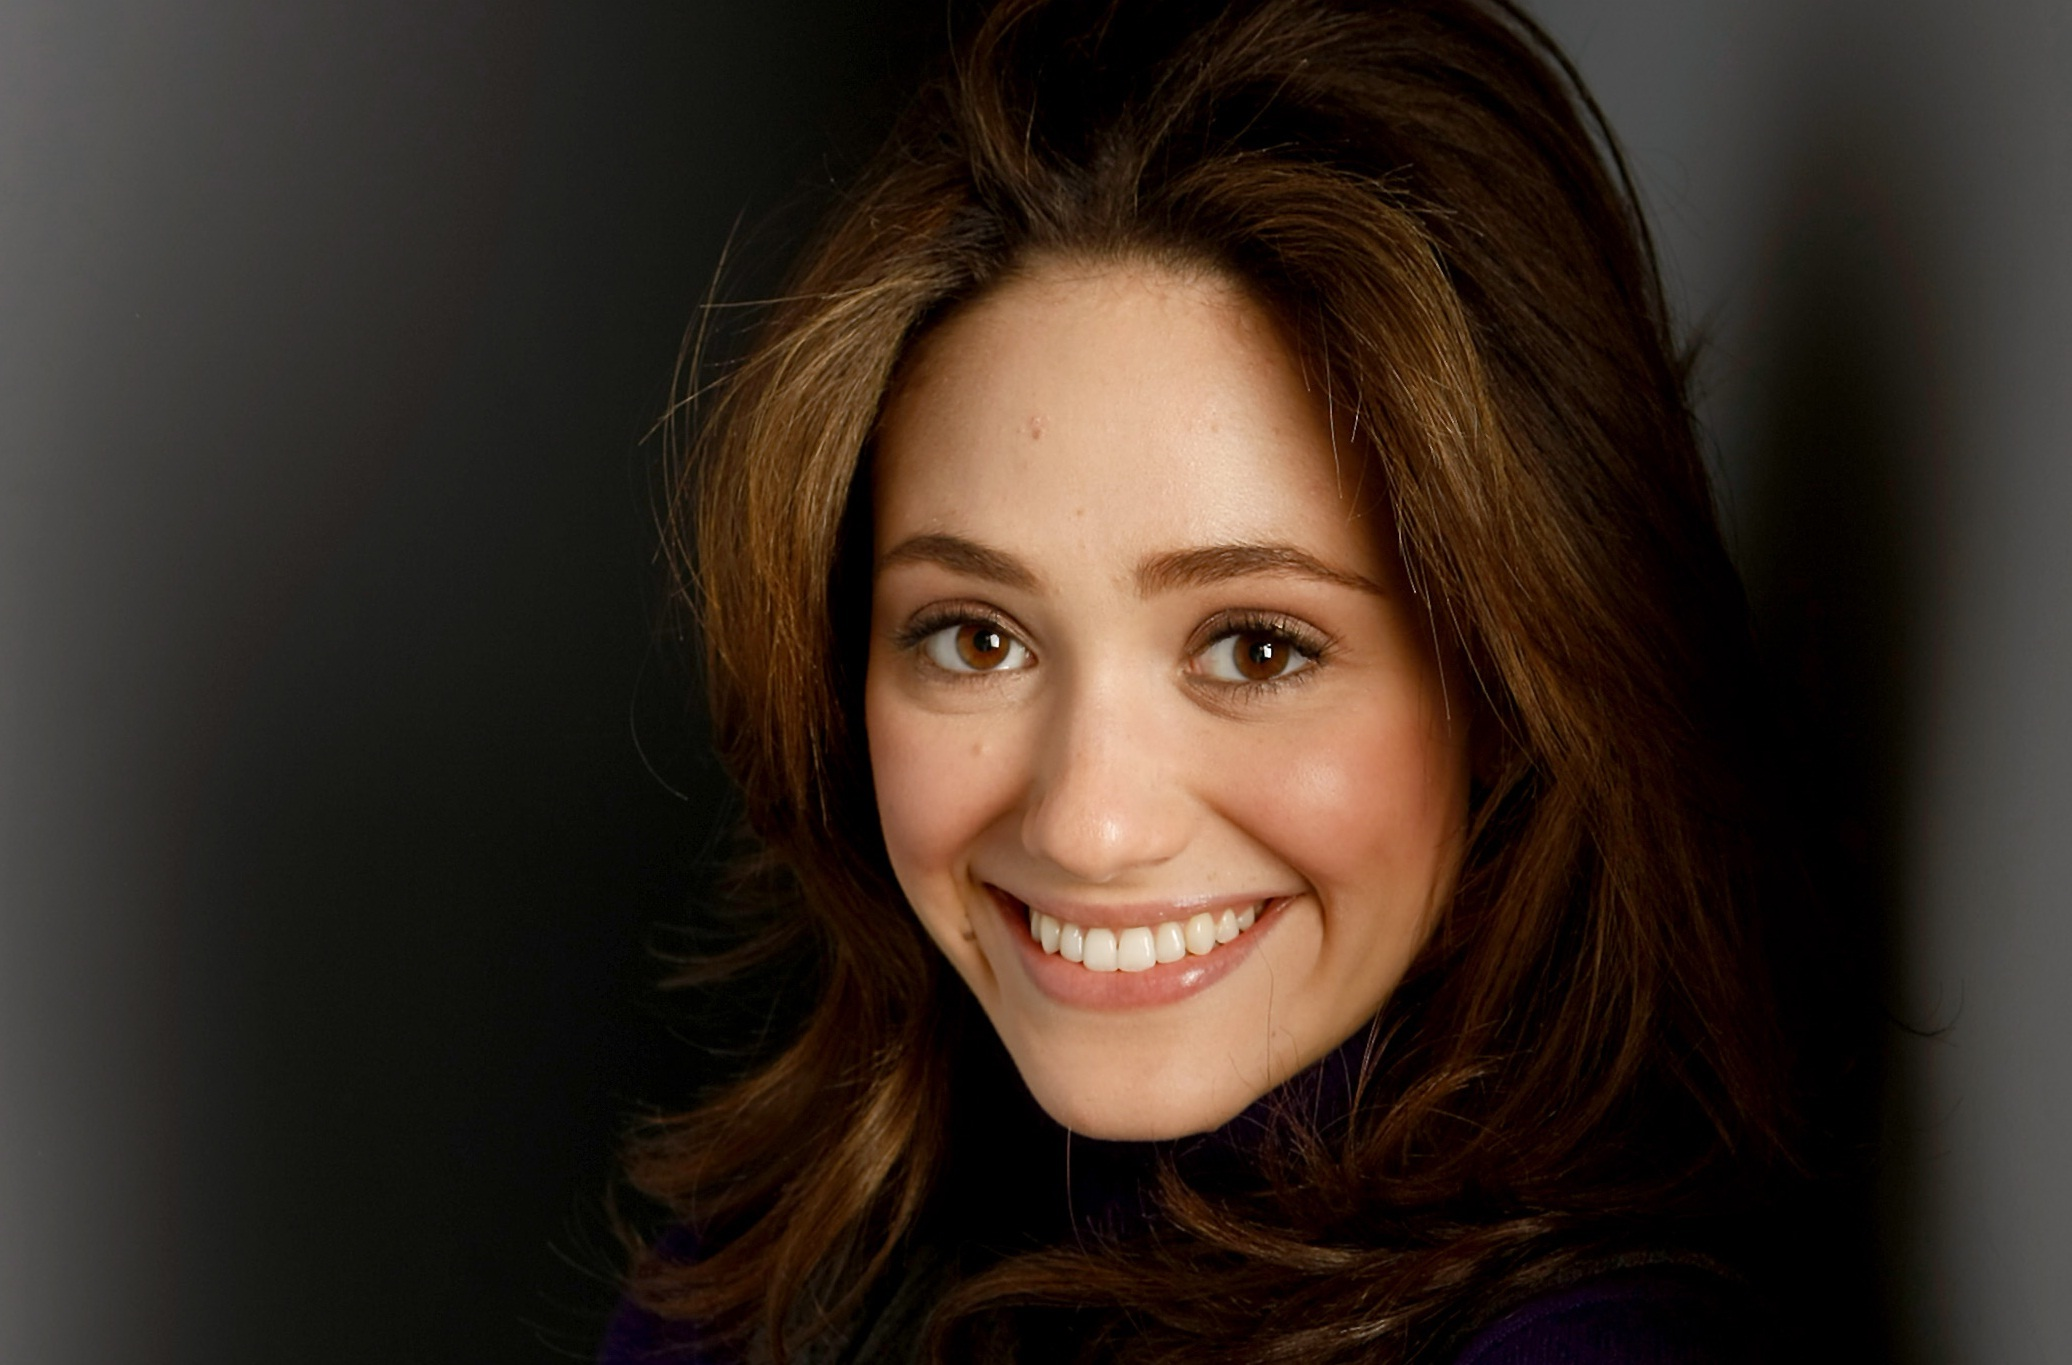 Emmy Rossum Wallpapers, Pictures, Images Emmy Rossum Wallpaper